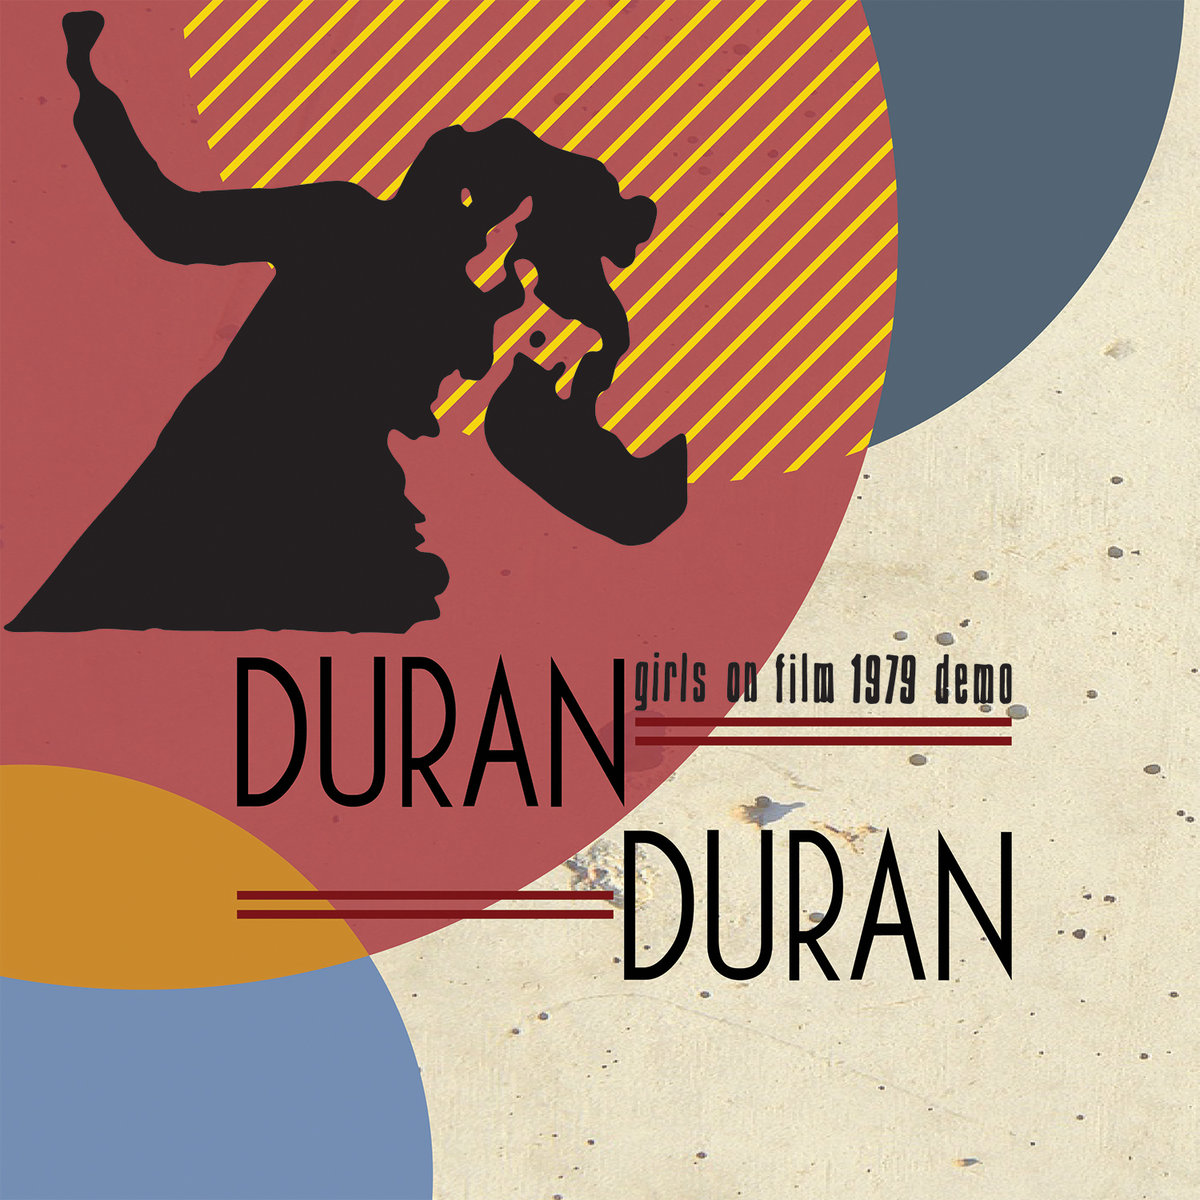 Cover artwork for Duran Duran Girls on Film 1979 Demo EP